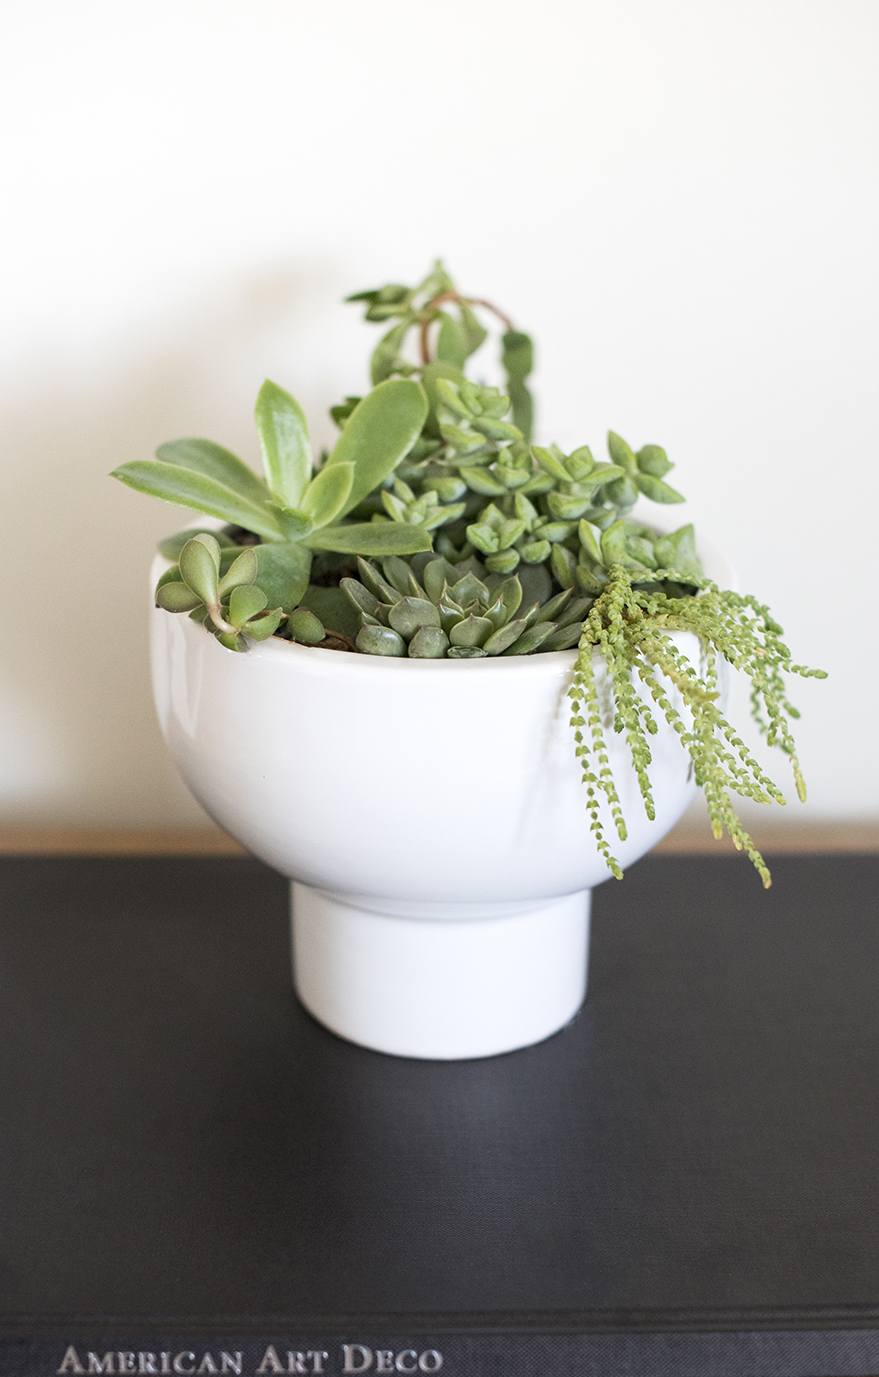 Amazon Finds : Planters for Spring - roomfortuesday.com